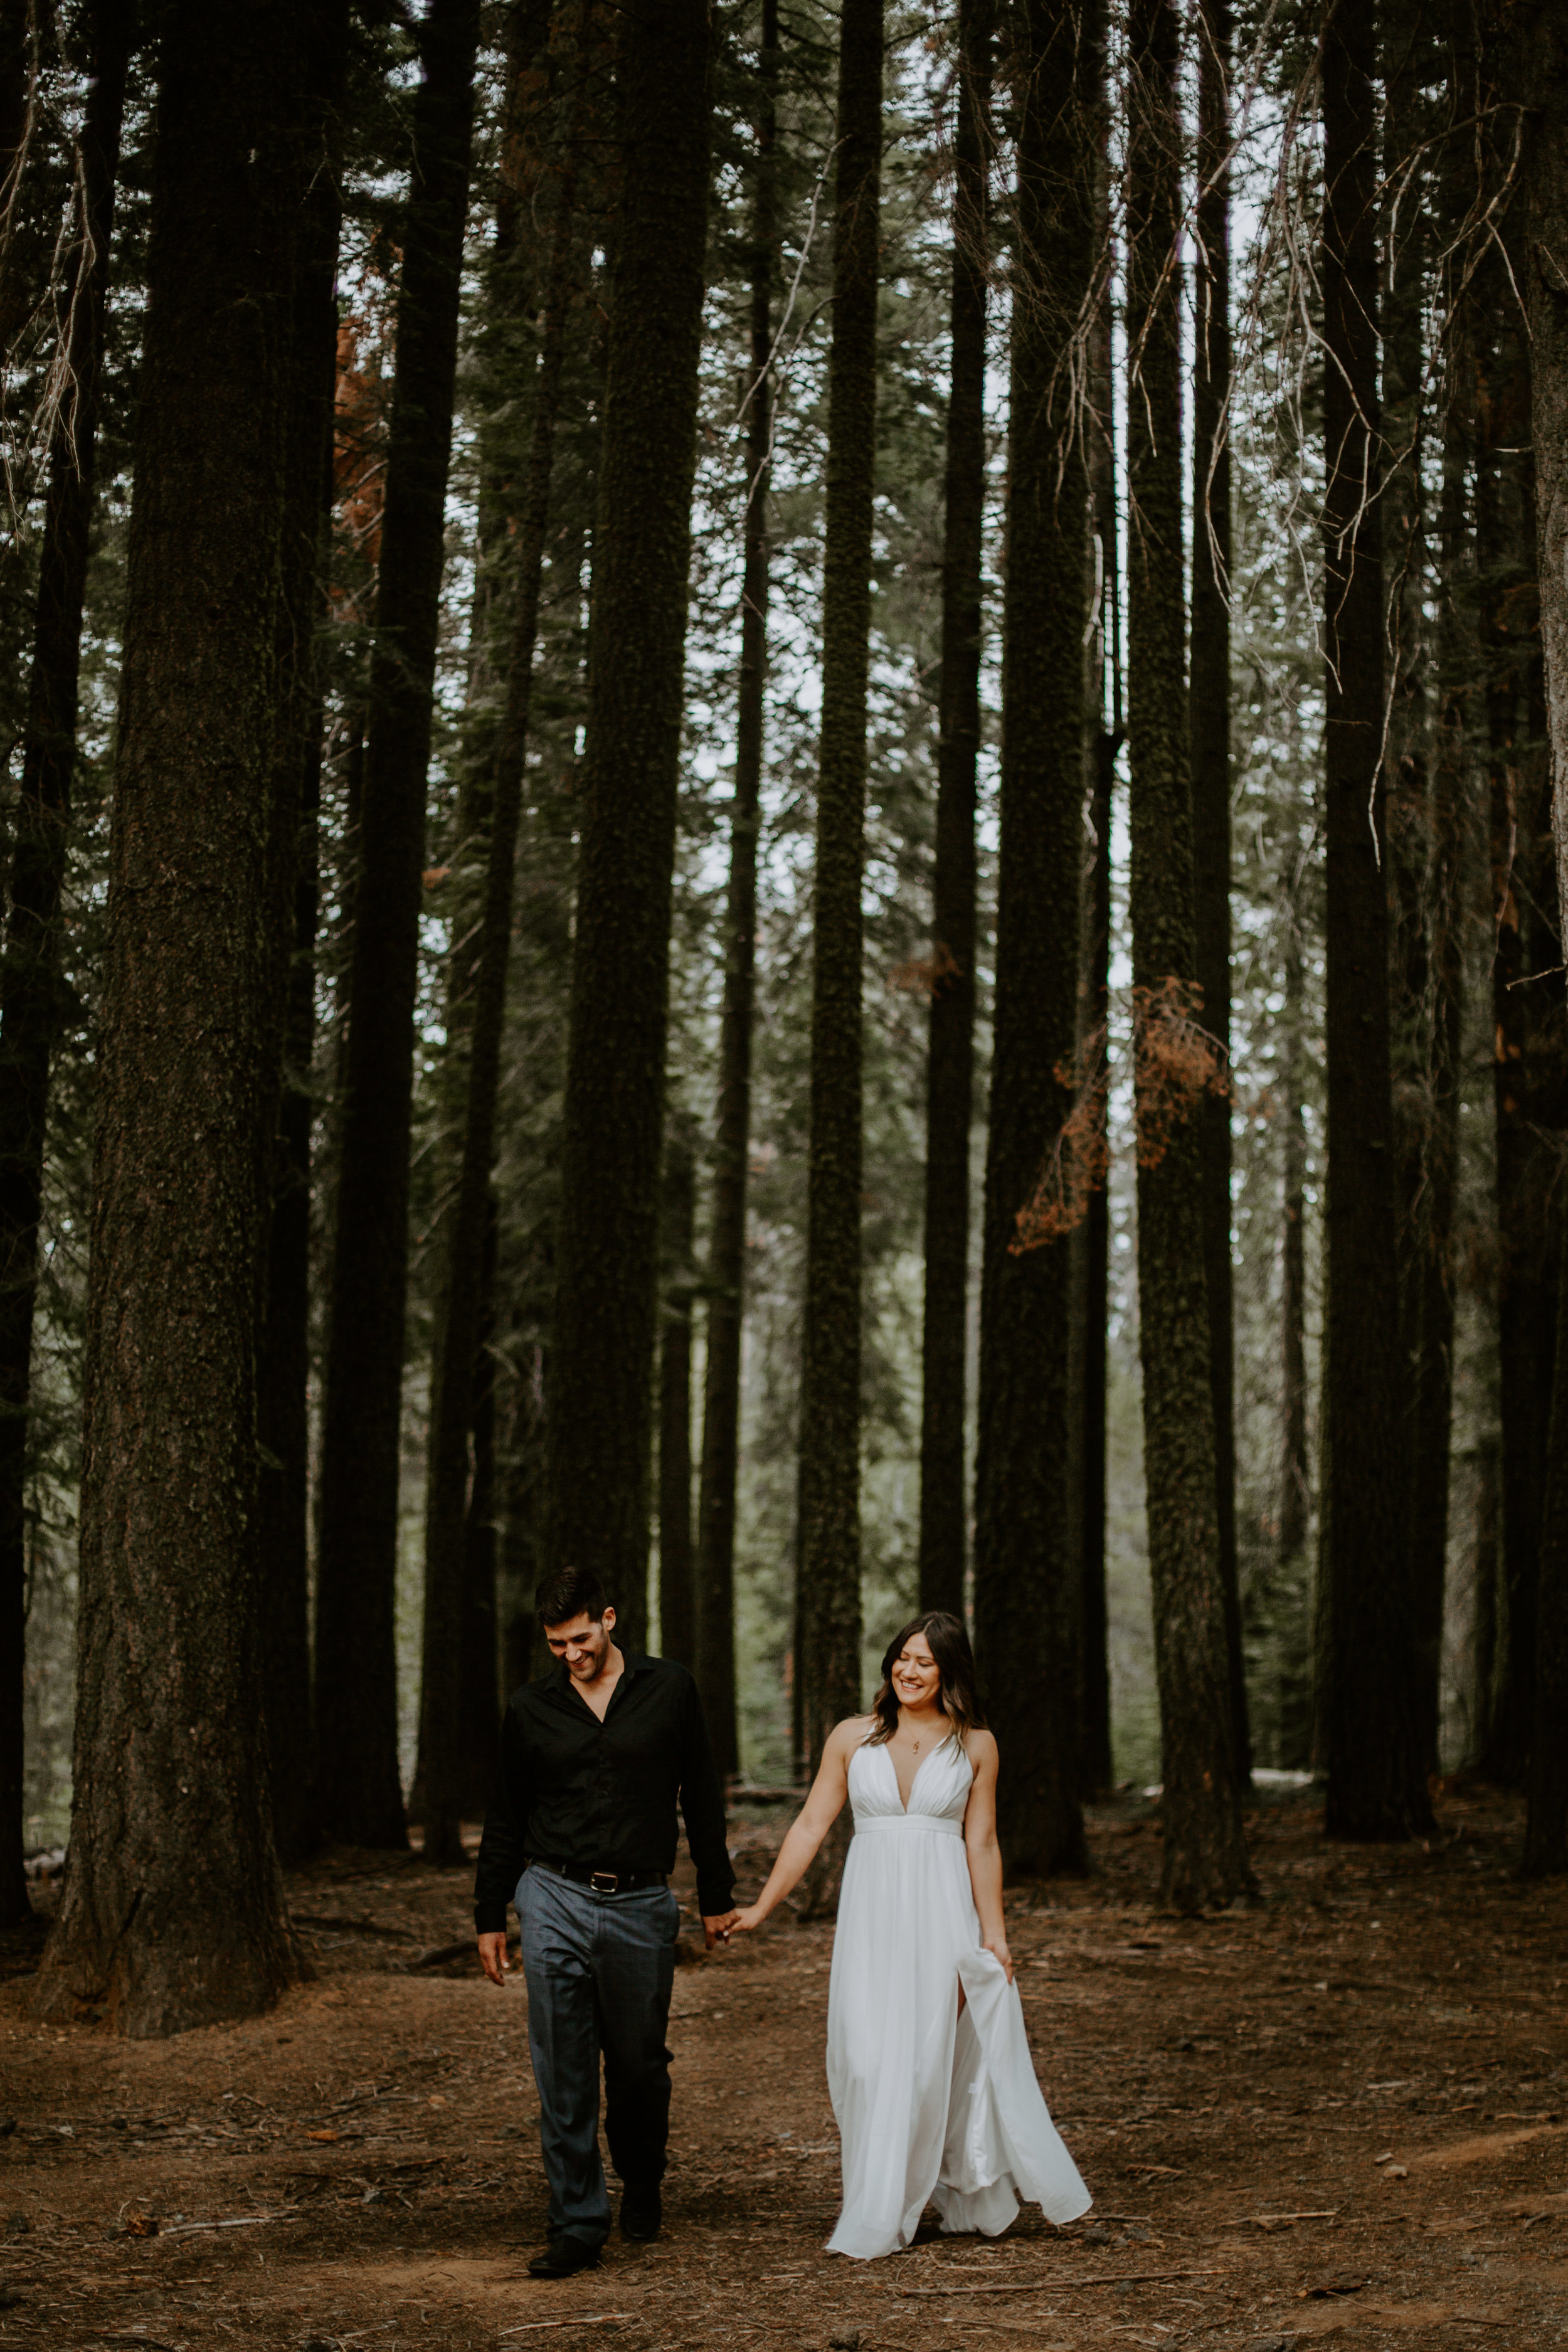 nicole-daacke-photography-yosemite-national-park-fall-elopement-adventurous-free-spirit-boho-bohemian-elopement-olmsted-point-yosemite-california-elope-adventure-elopement-photographer-2.jpg